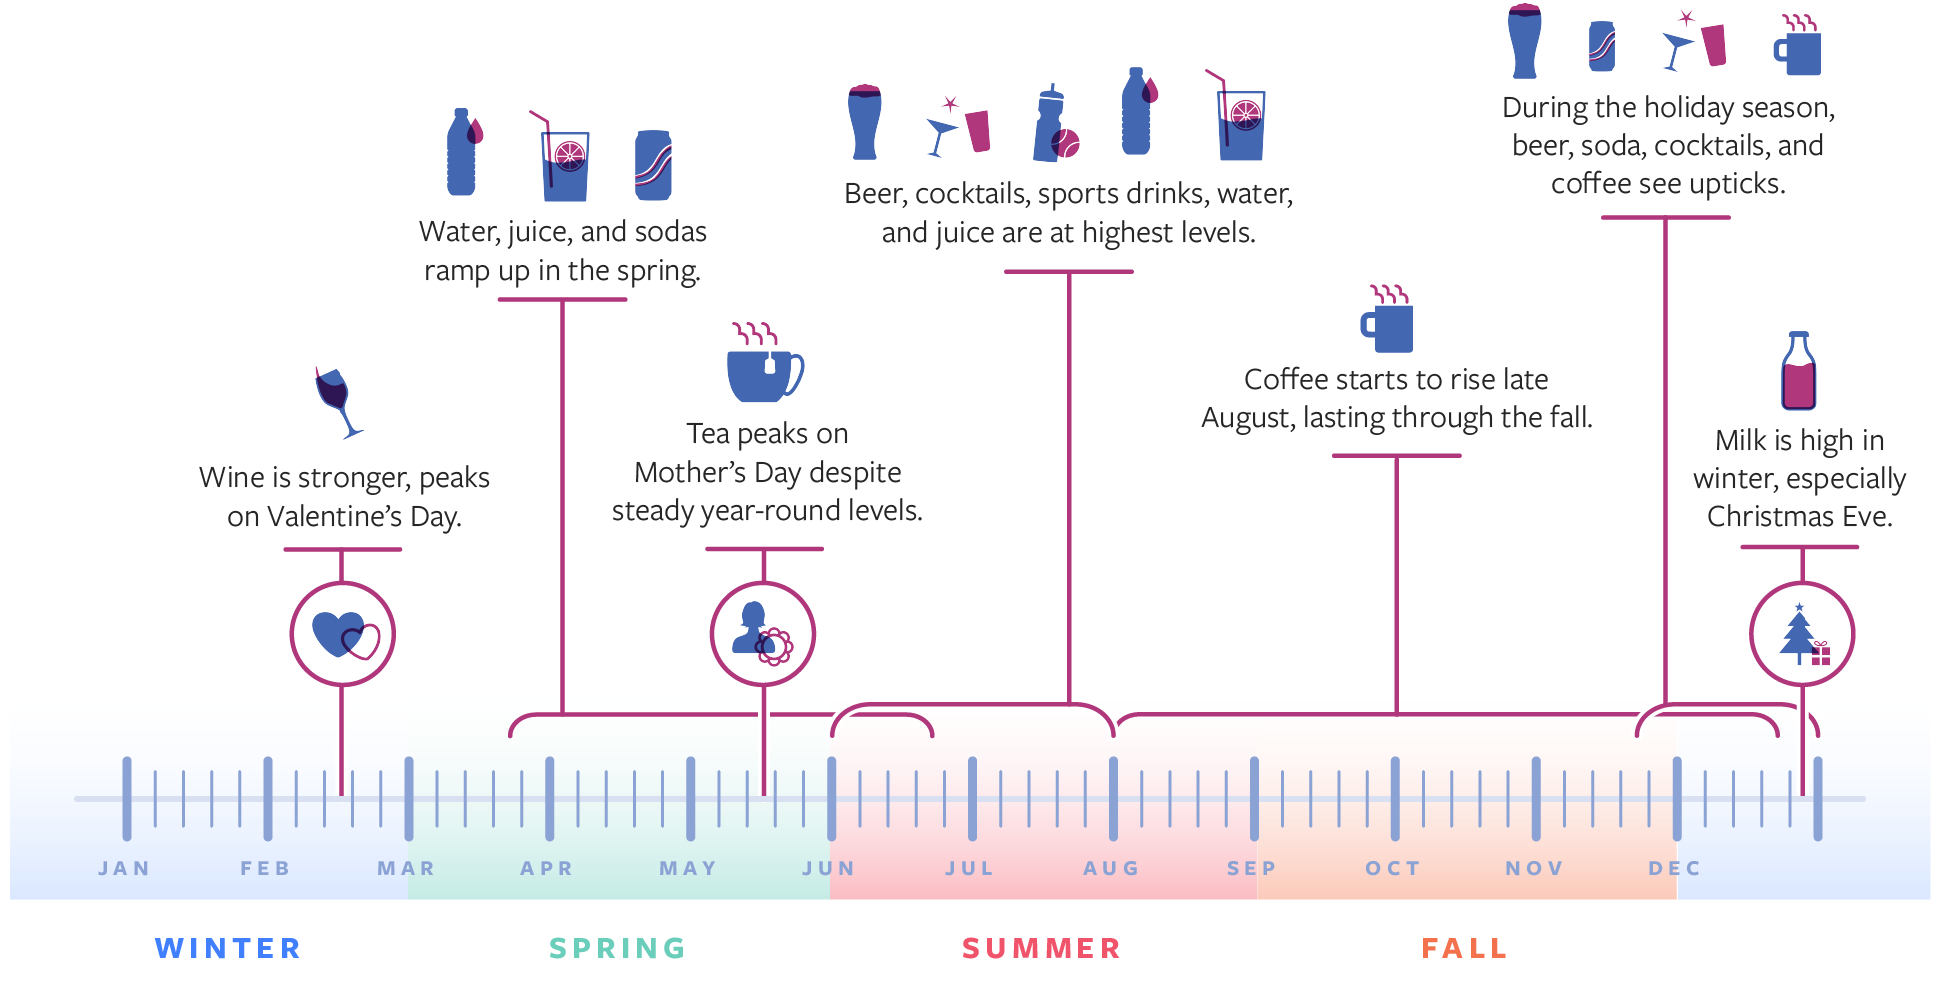 Facebook Releases New Data on Beverage-Related Conversation Across Facebook and Instagram | Social Media Today